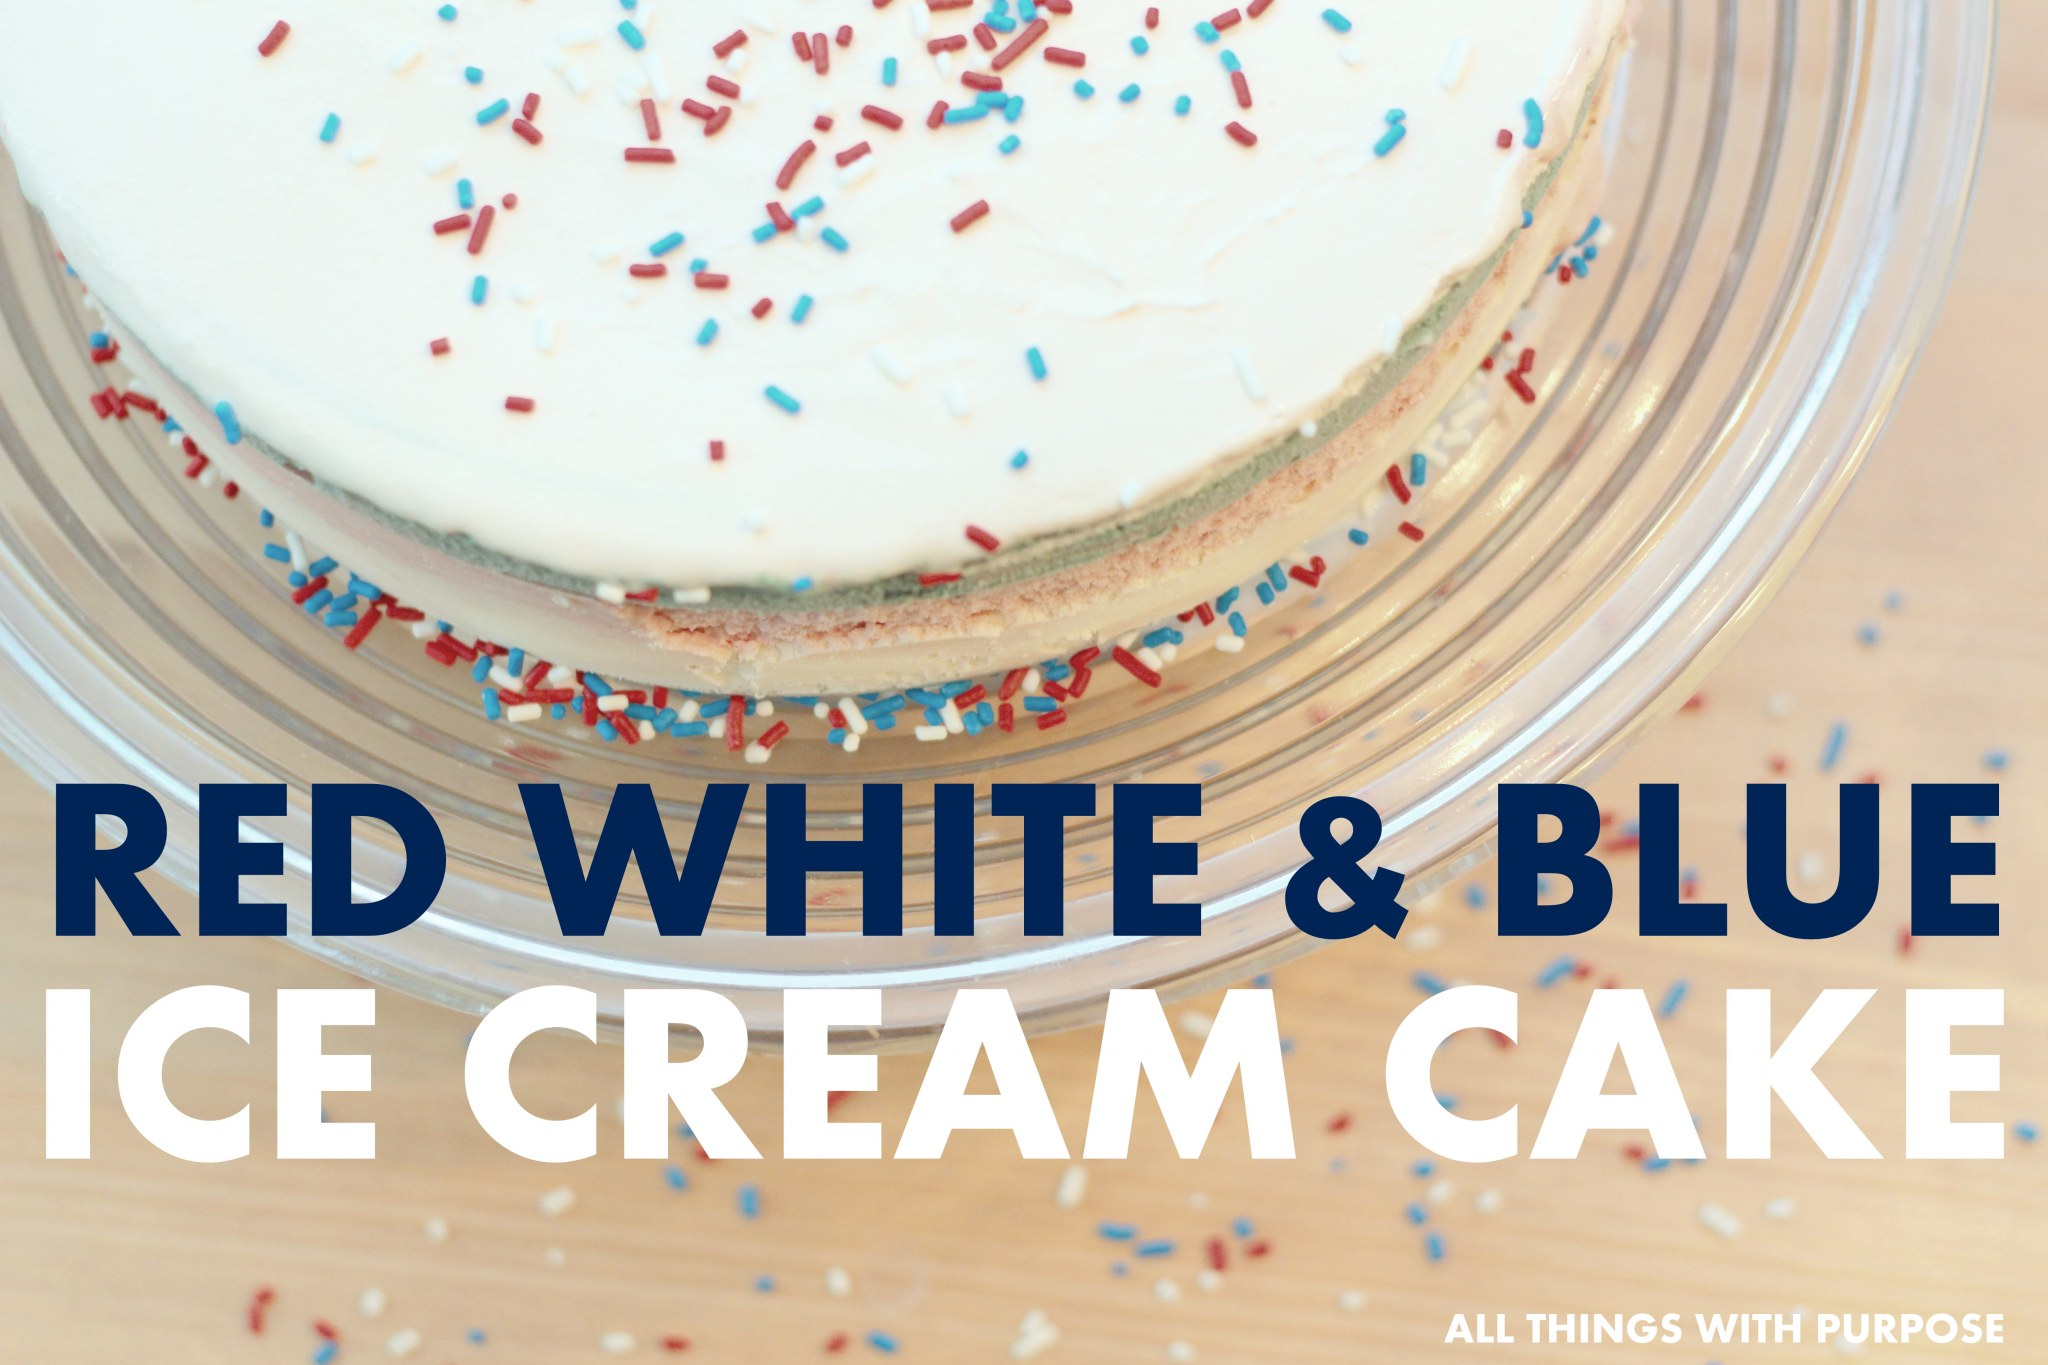 DQ Red White and Blue Ice Cream Cake